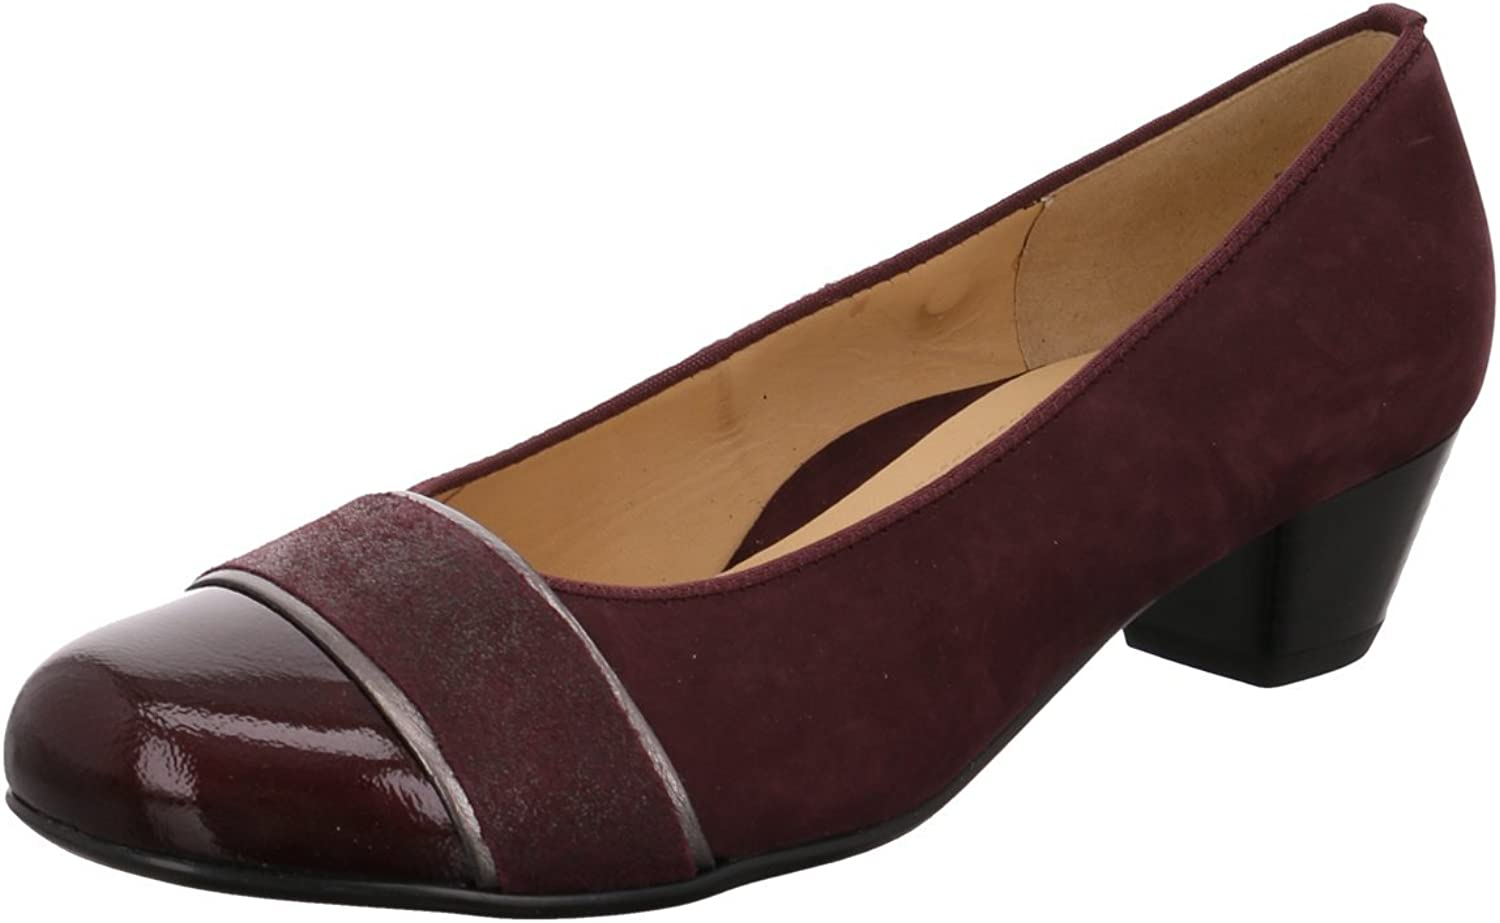 ARA Damen Pumps Messina 12-43637-15 5 rot 344838